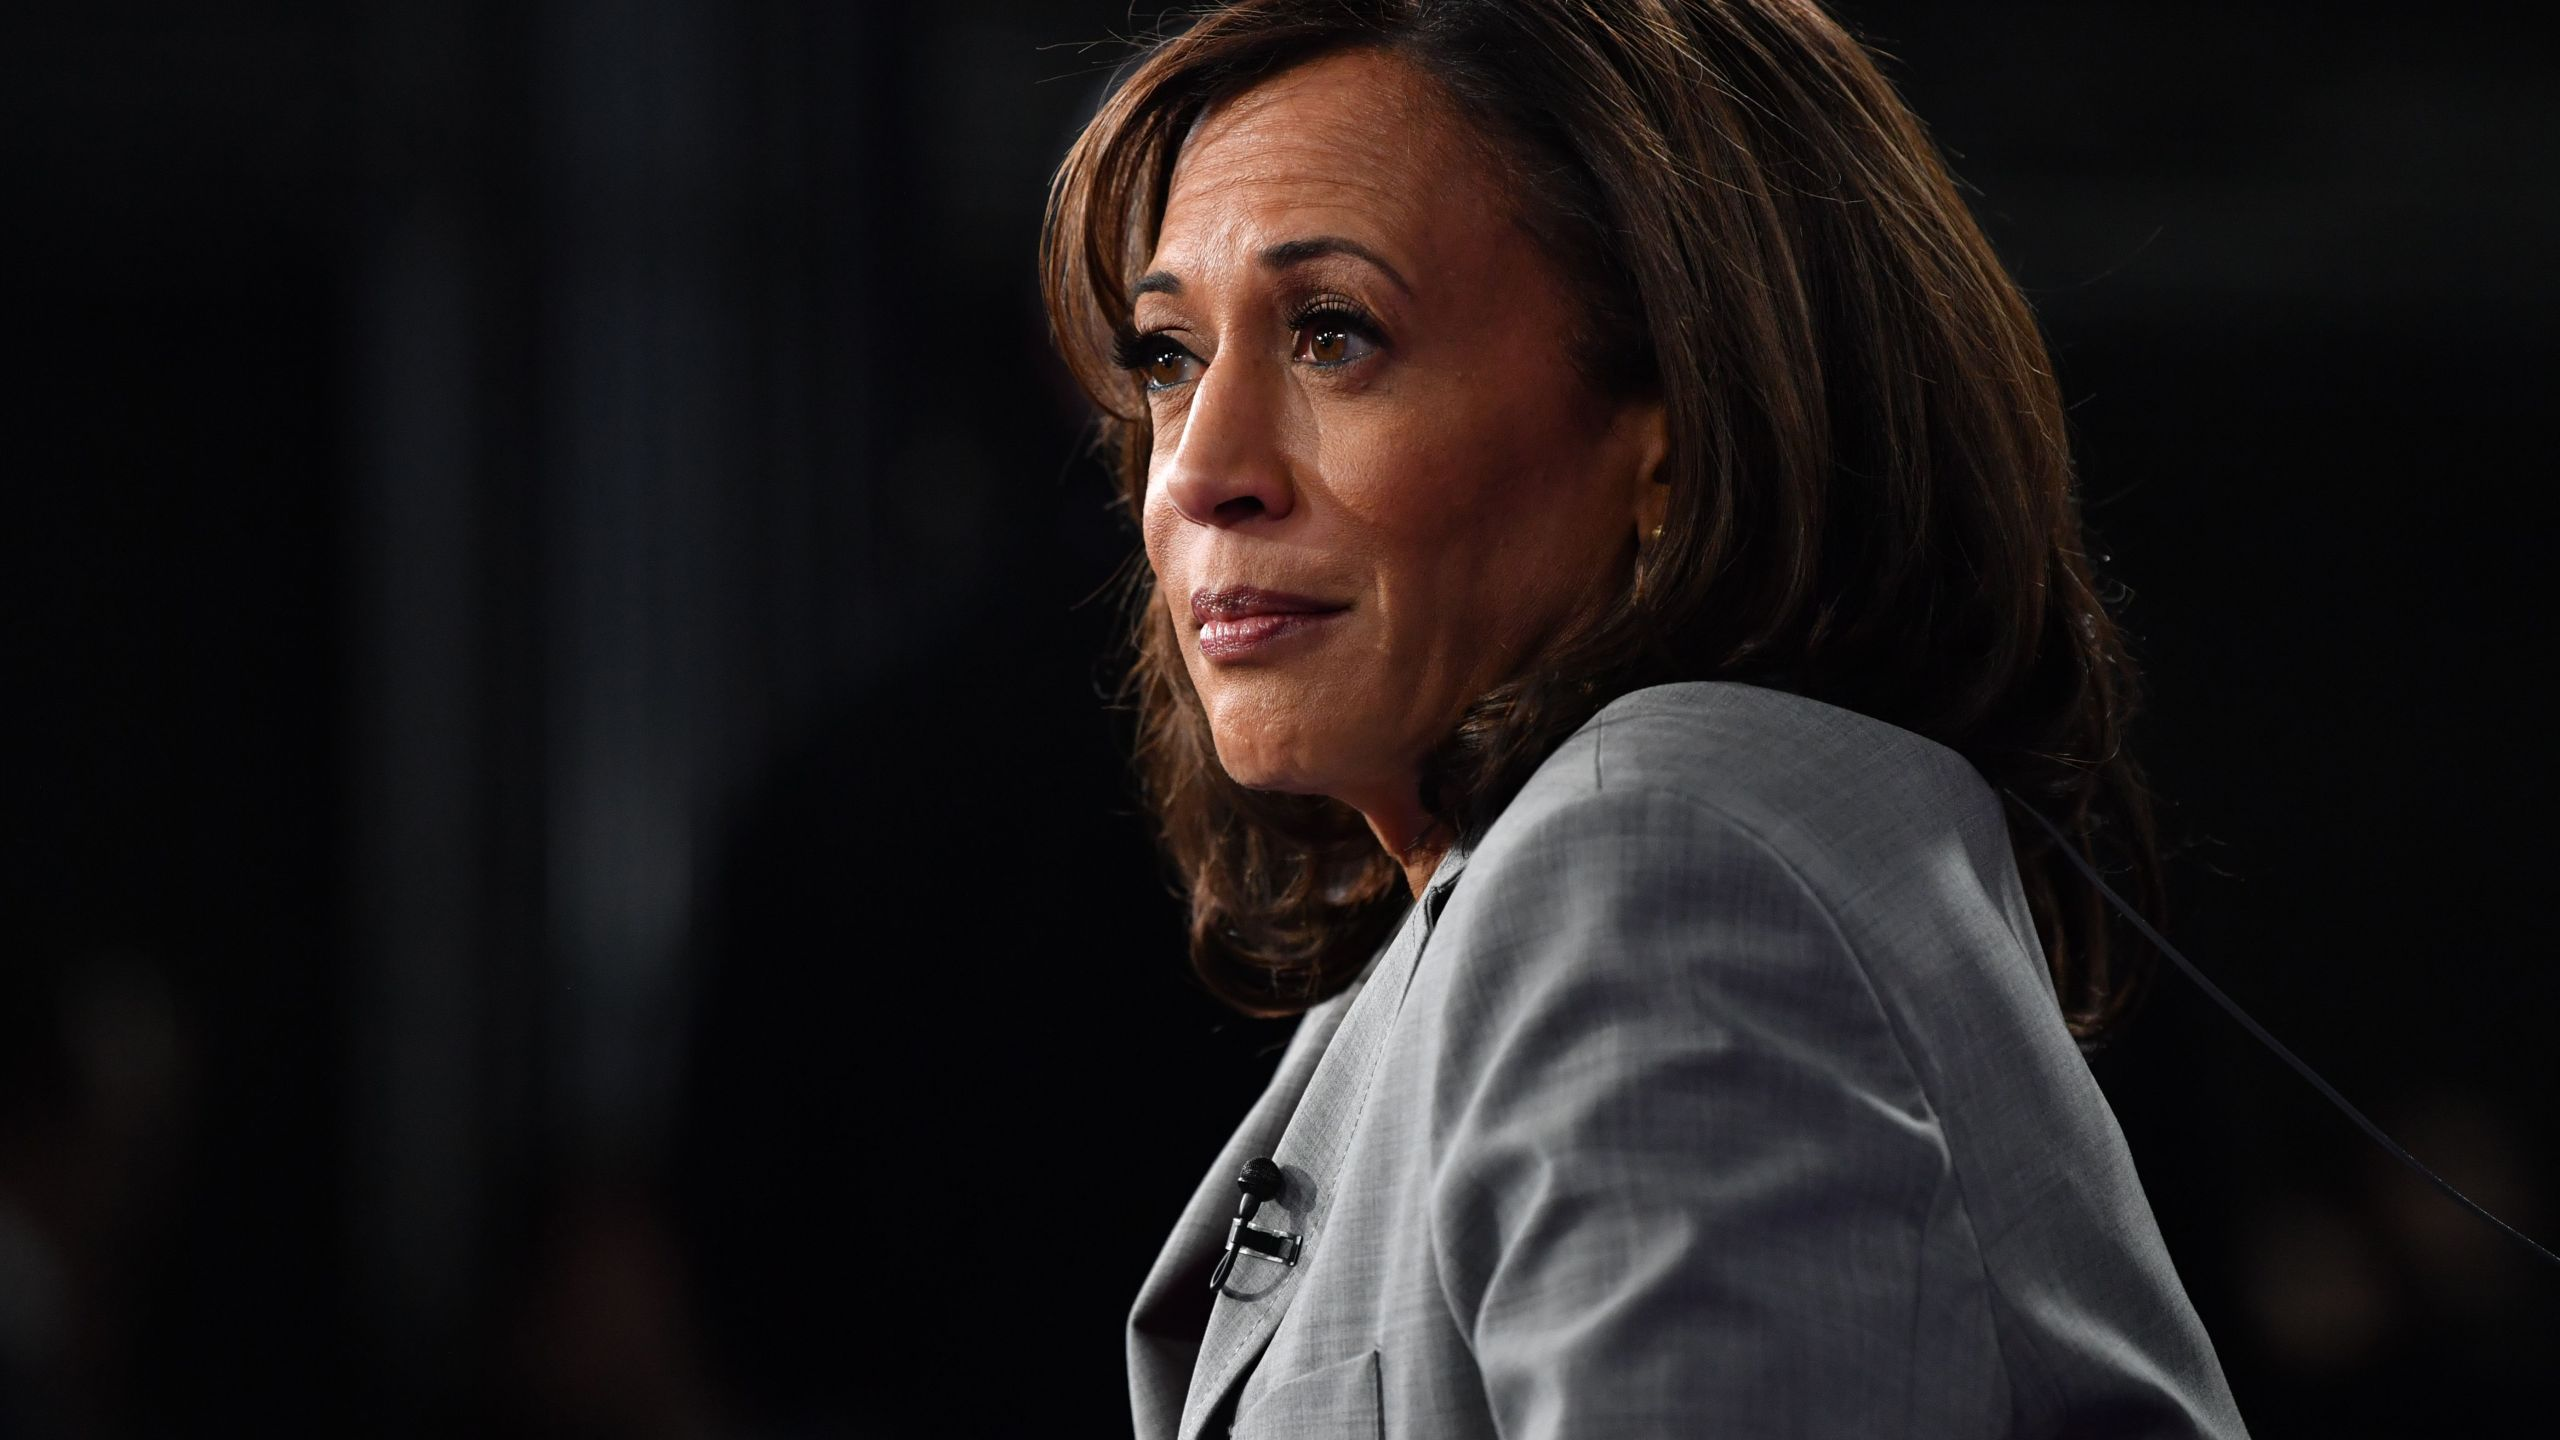 California Senator Kamala Harris speaks to the press after participating in the fifth Democratic primary debate of the 2020 presidential campaign in Atlanta, Georgia on Nov. 20, 2019. (Nicholas Kamm/AFP via Getty Images)